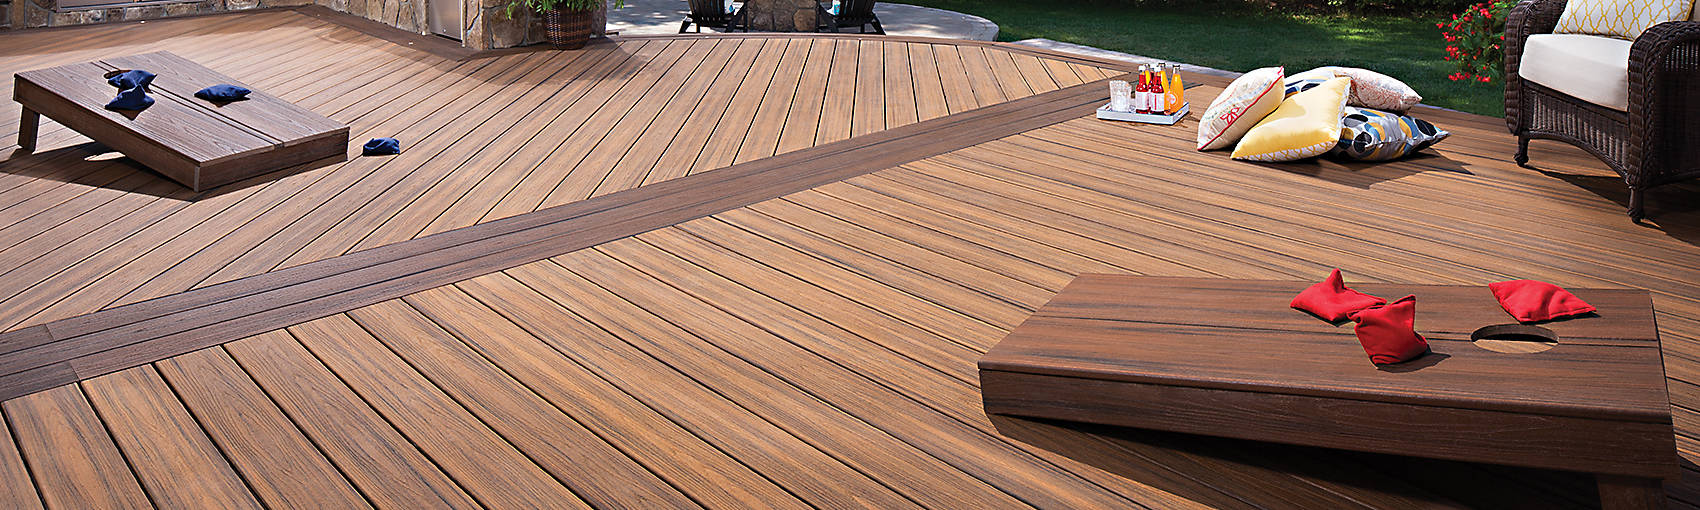 Trex decking images galleries with a for Alternative to decking